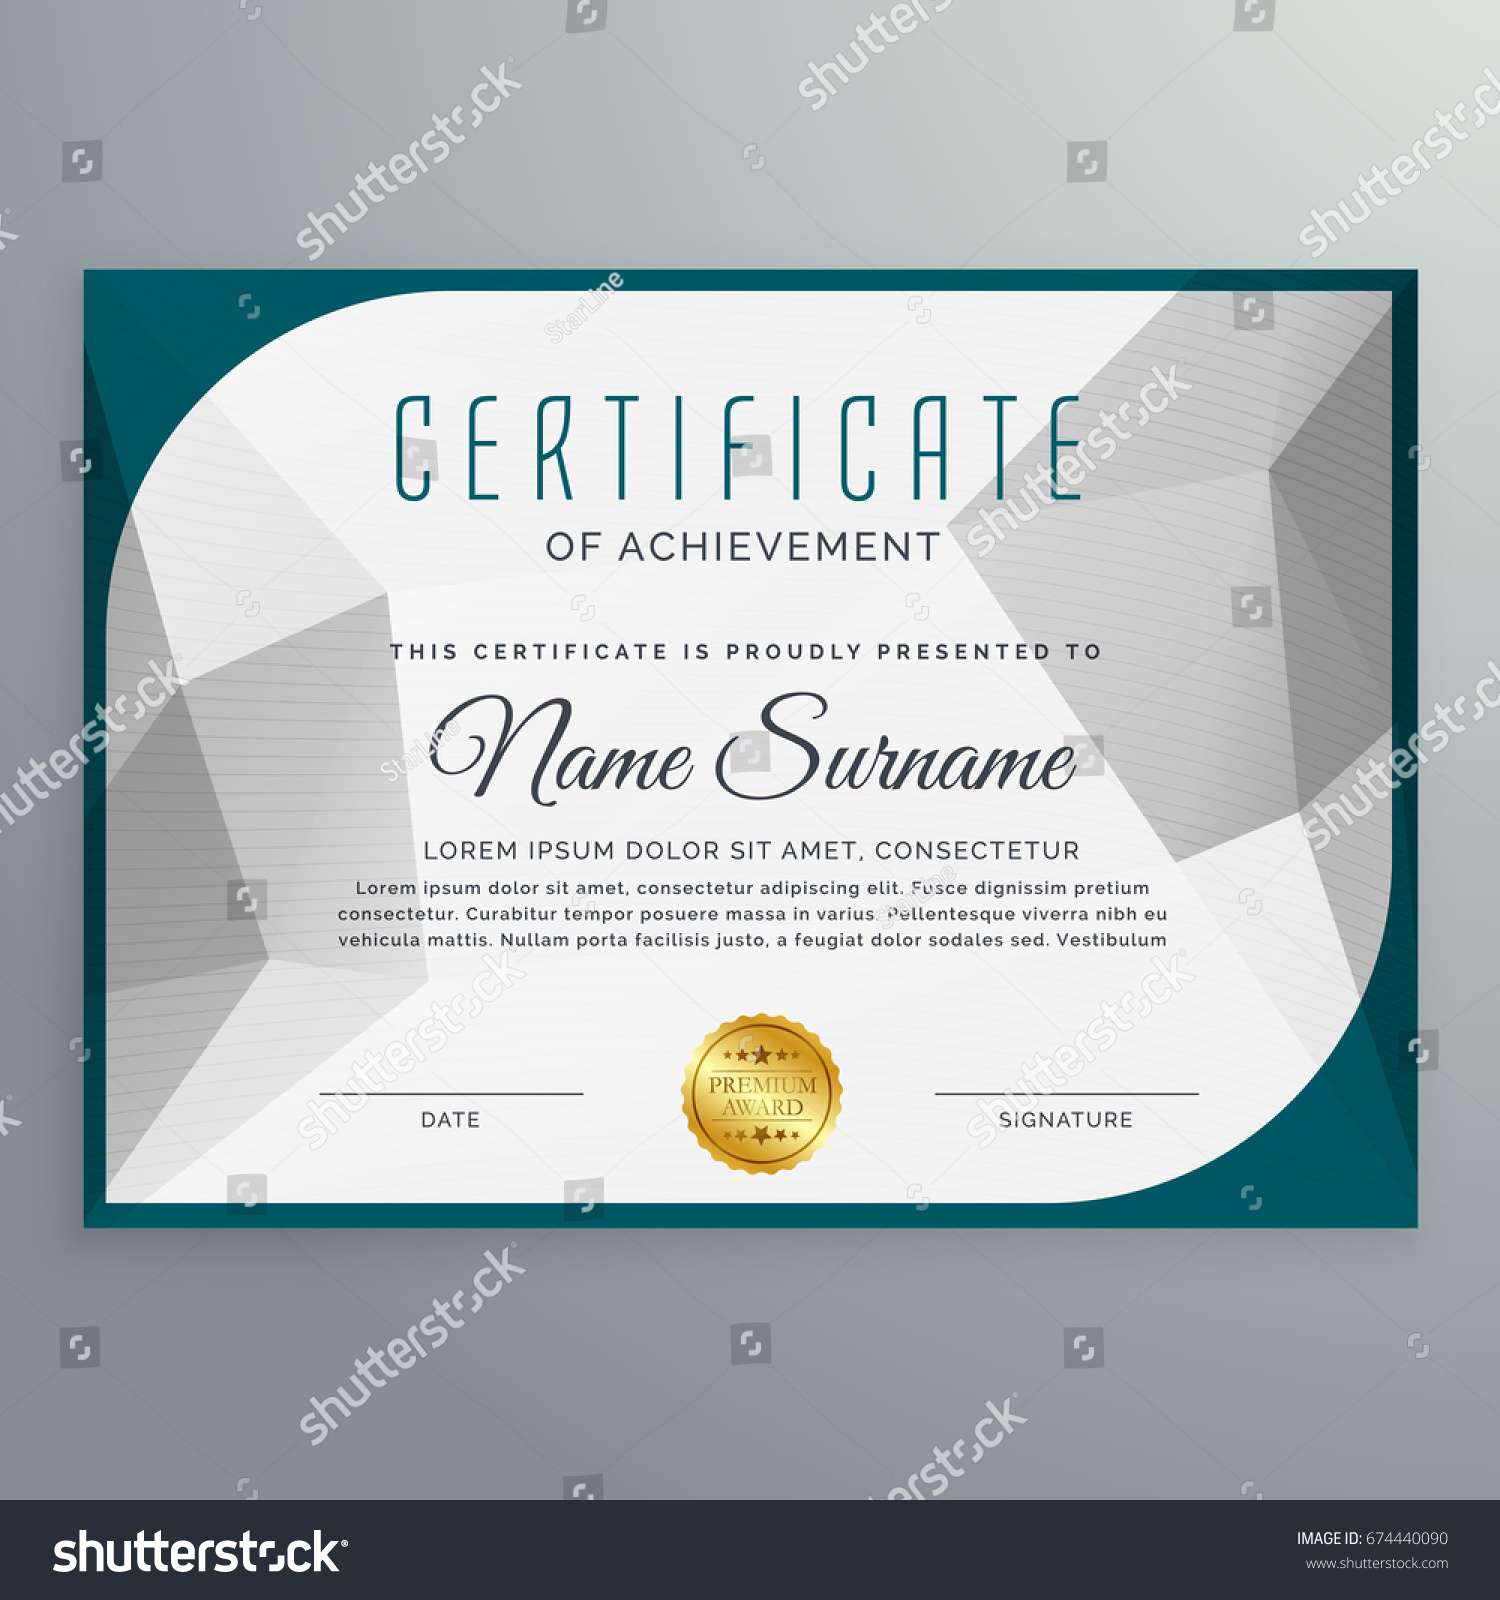 Creative Simple Certificate Design Template Abstract Stock Vector 674440090 Shutterstock